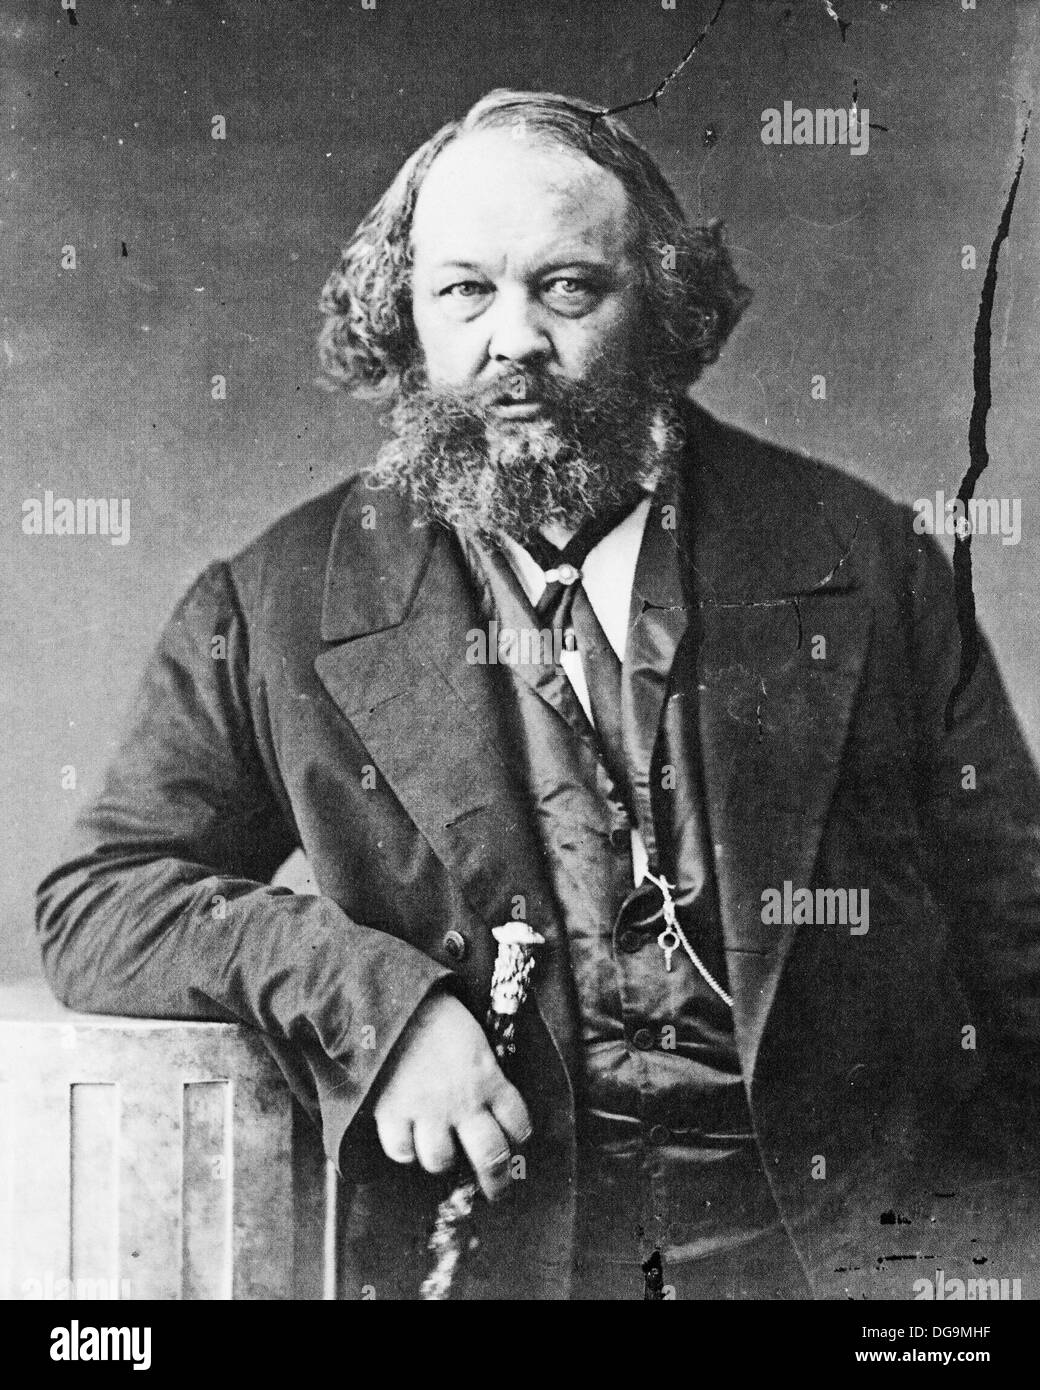 Mikhail Bakunin (1814 - 1876), Russian revolutionary philosopher. Photograph by Nadar - Stock Image